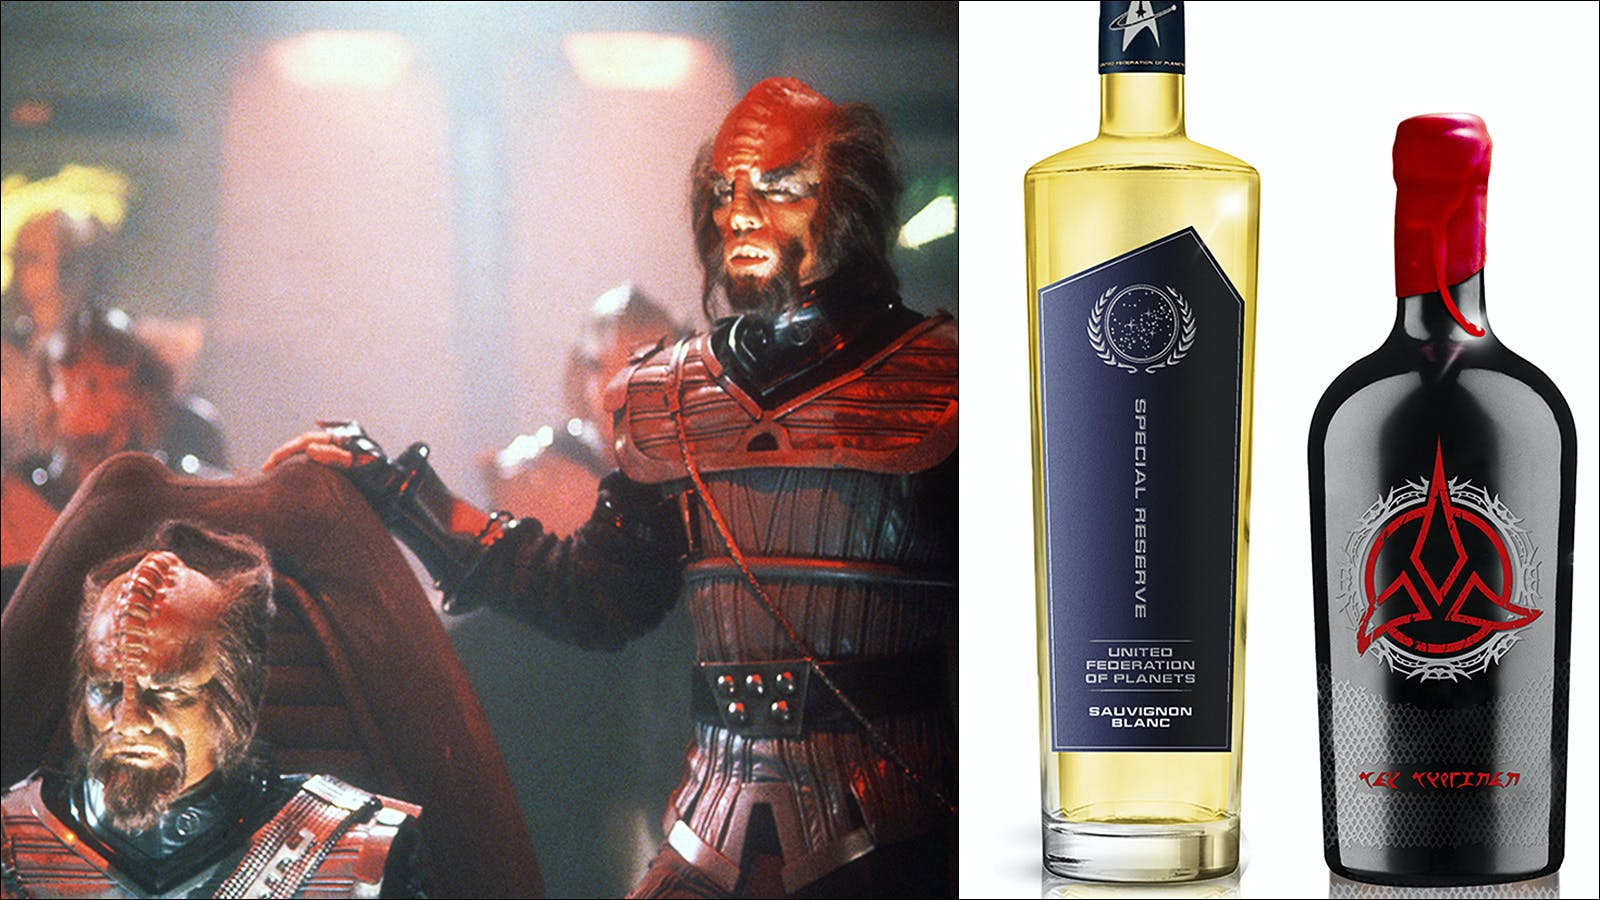 New 'Star Trek' Klingon Bloodwine Is Here for You to Celebrate Vanquishing Your Enemies